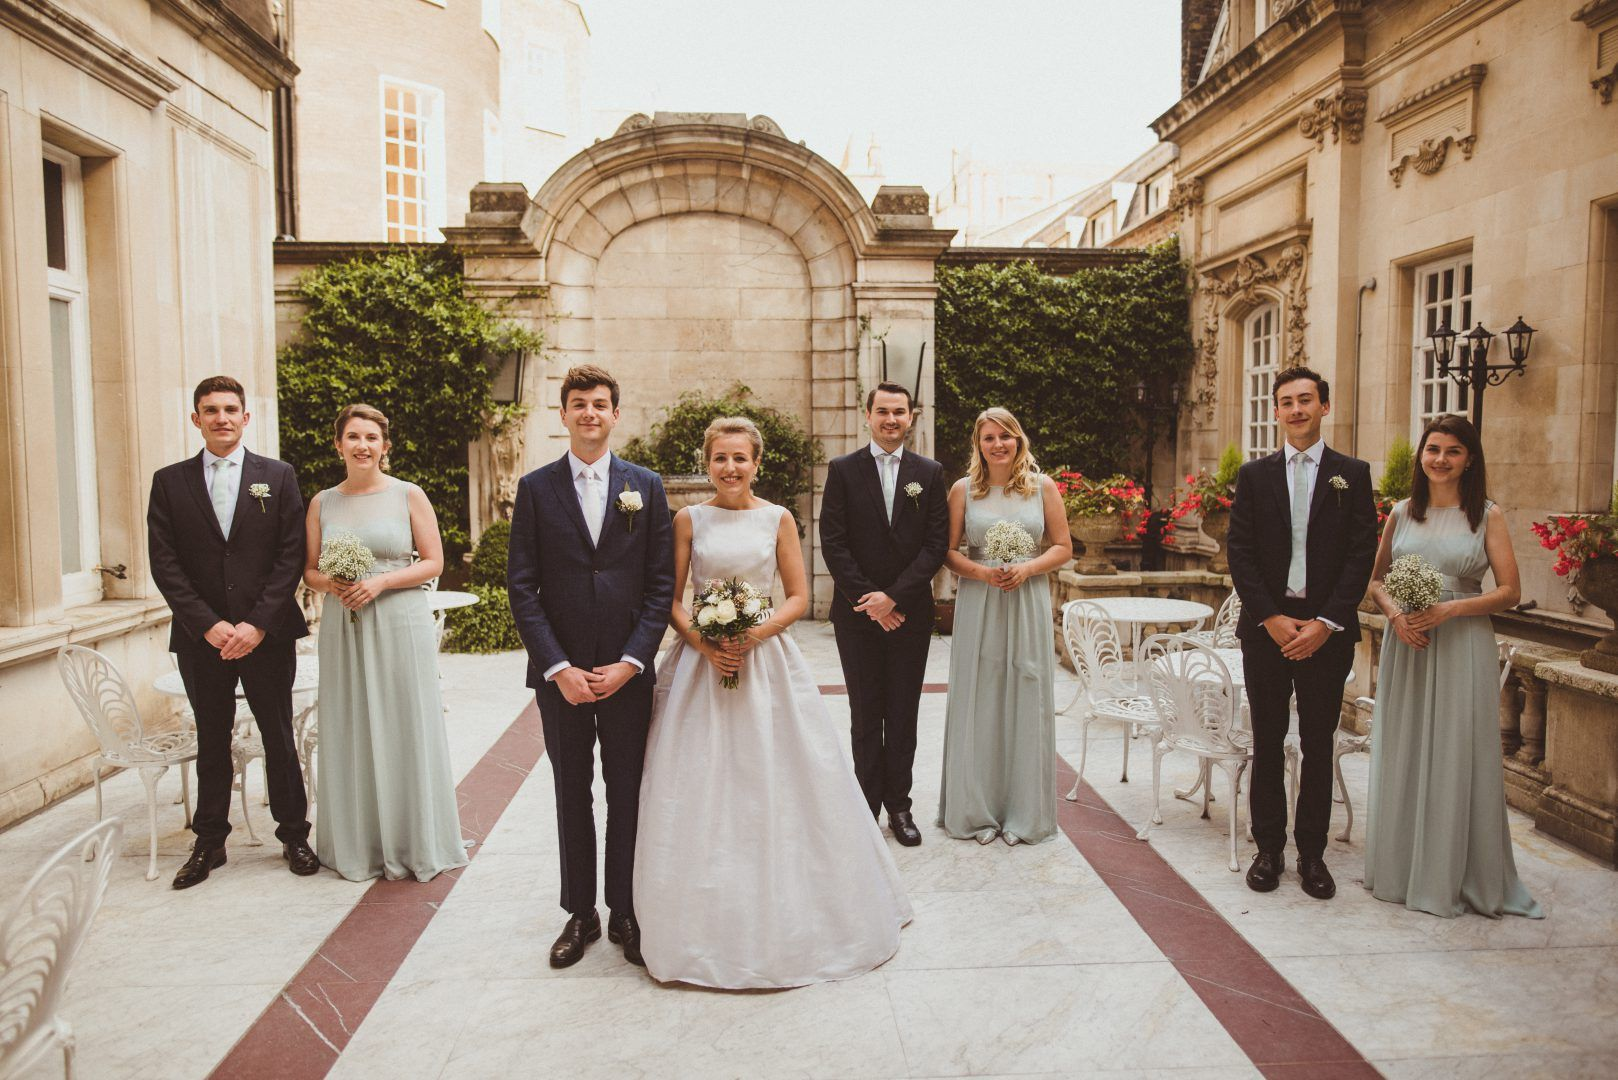 wedding-party-in-courtyard